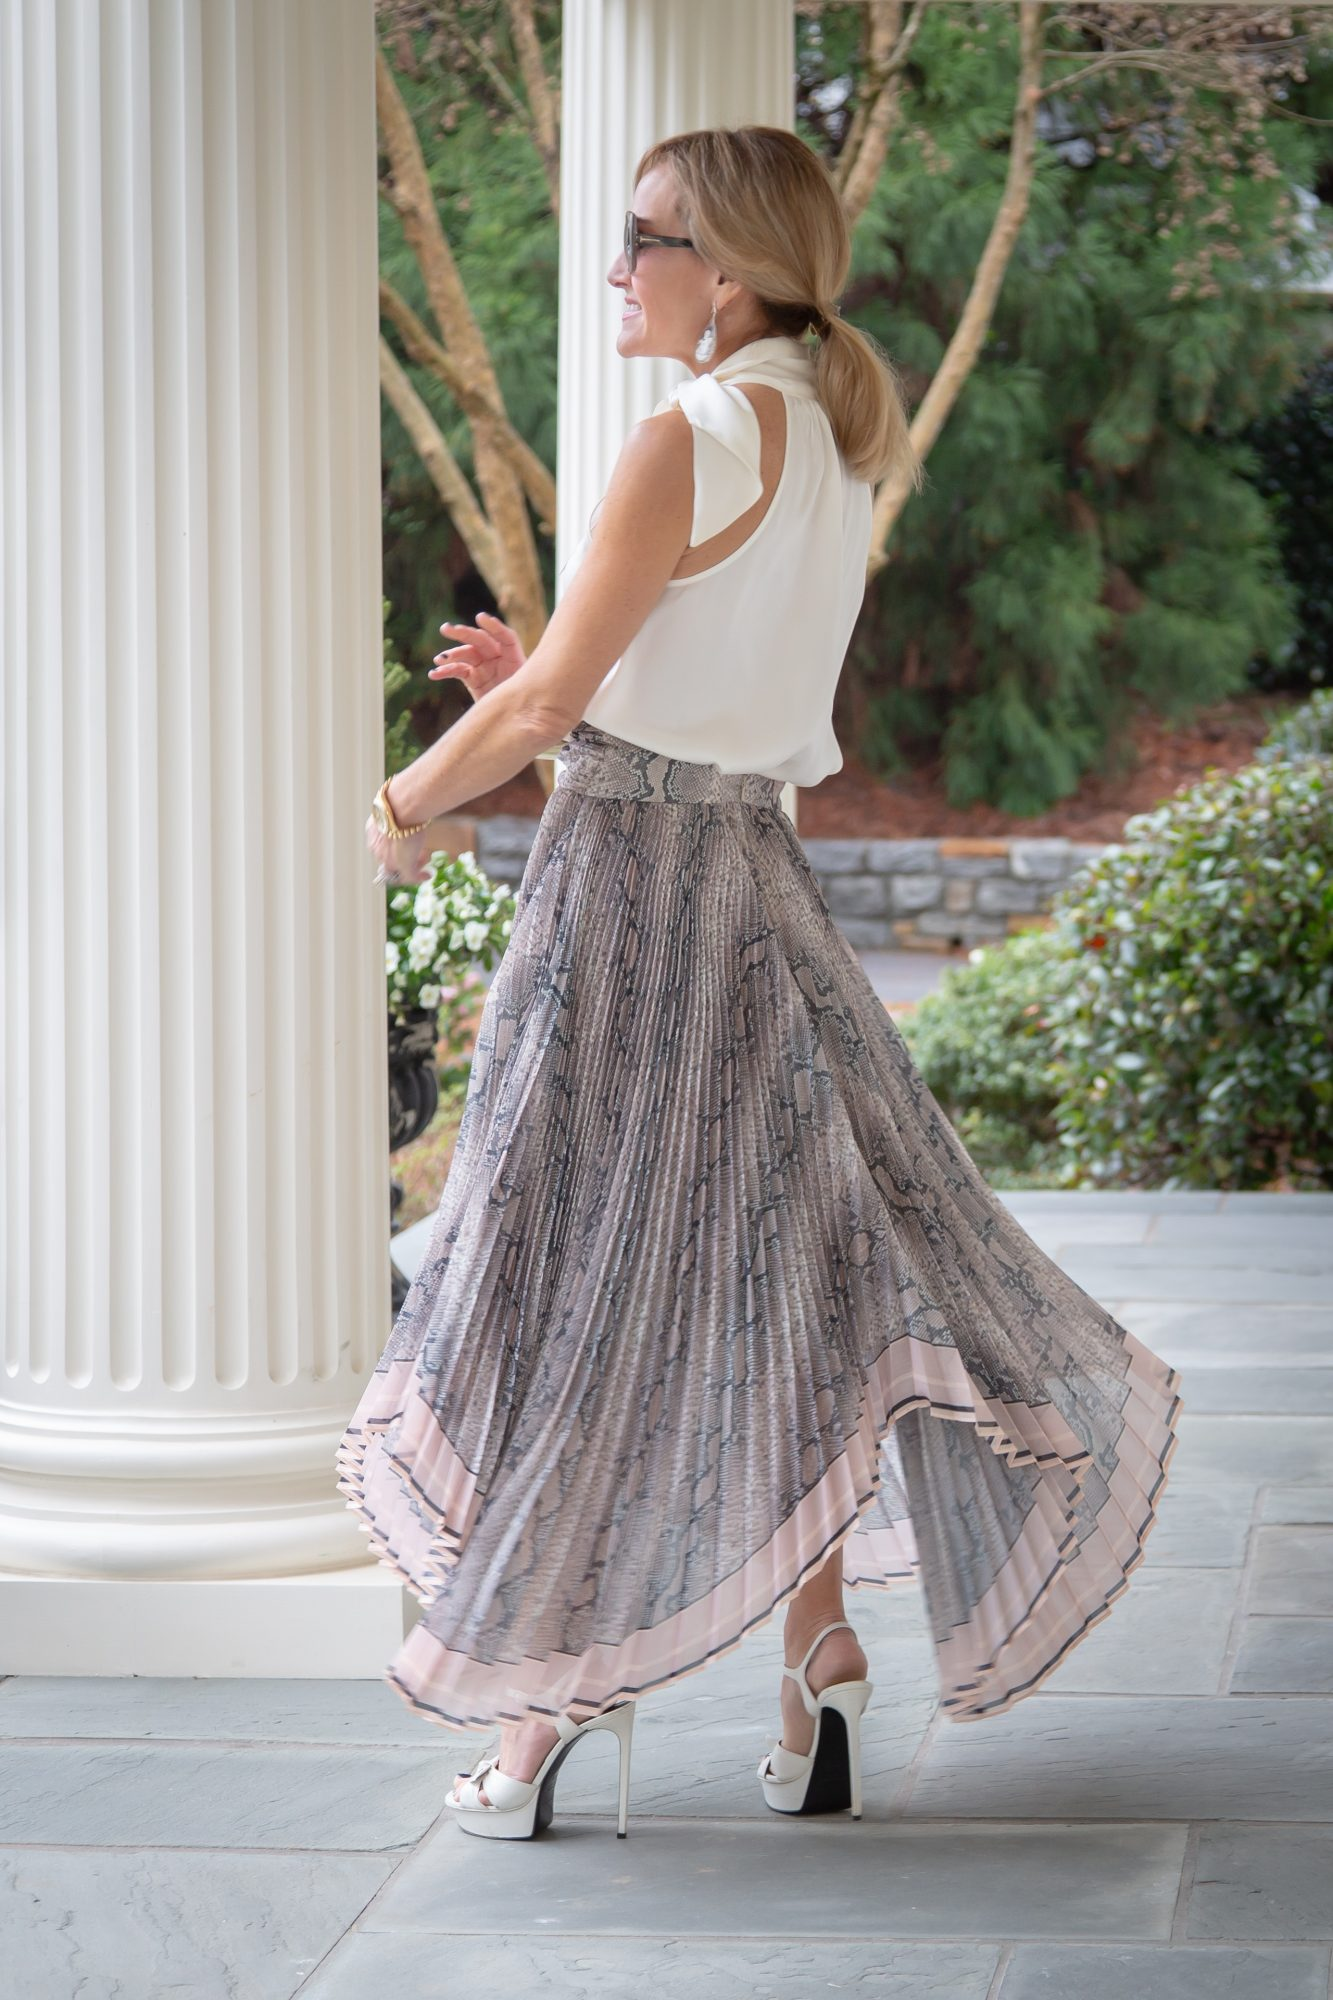 Zimmermann Can Do No Wrong Spring Fashion KirbYourStyle com